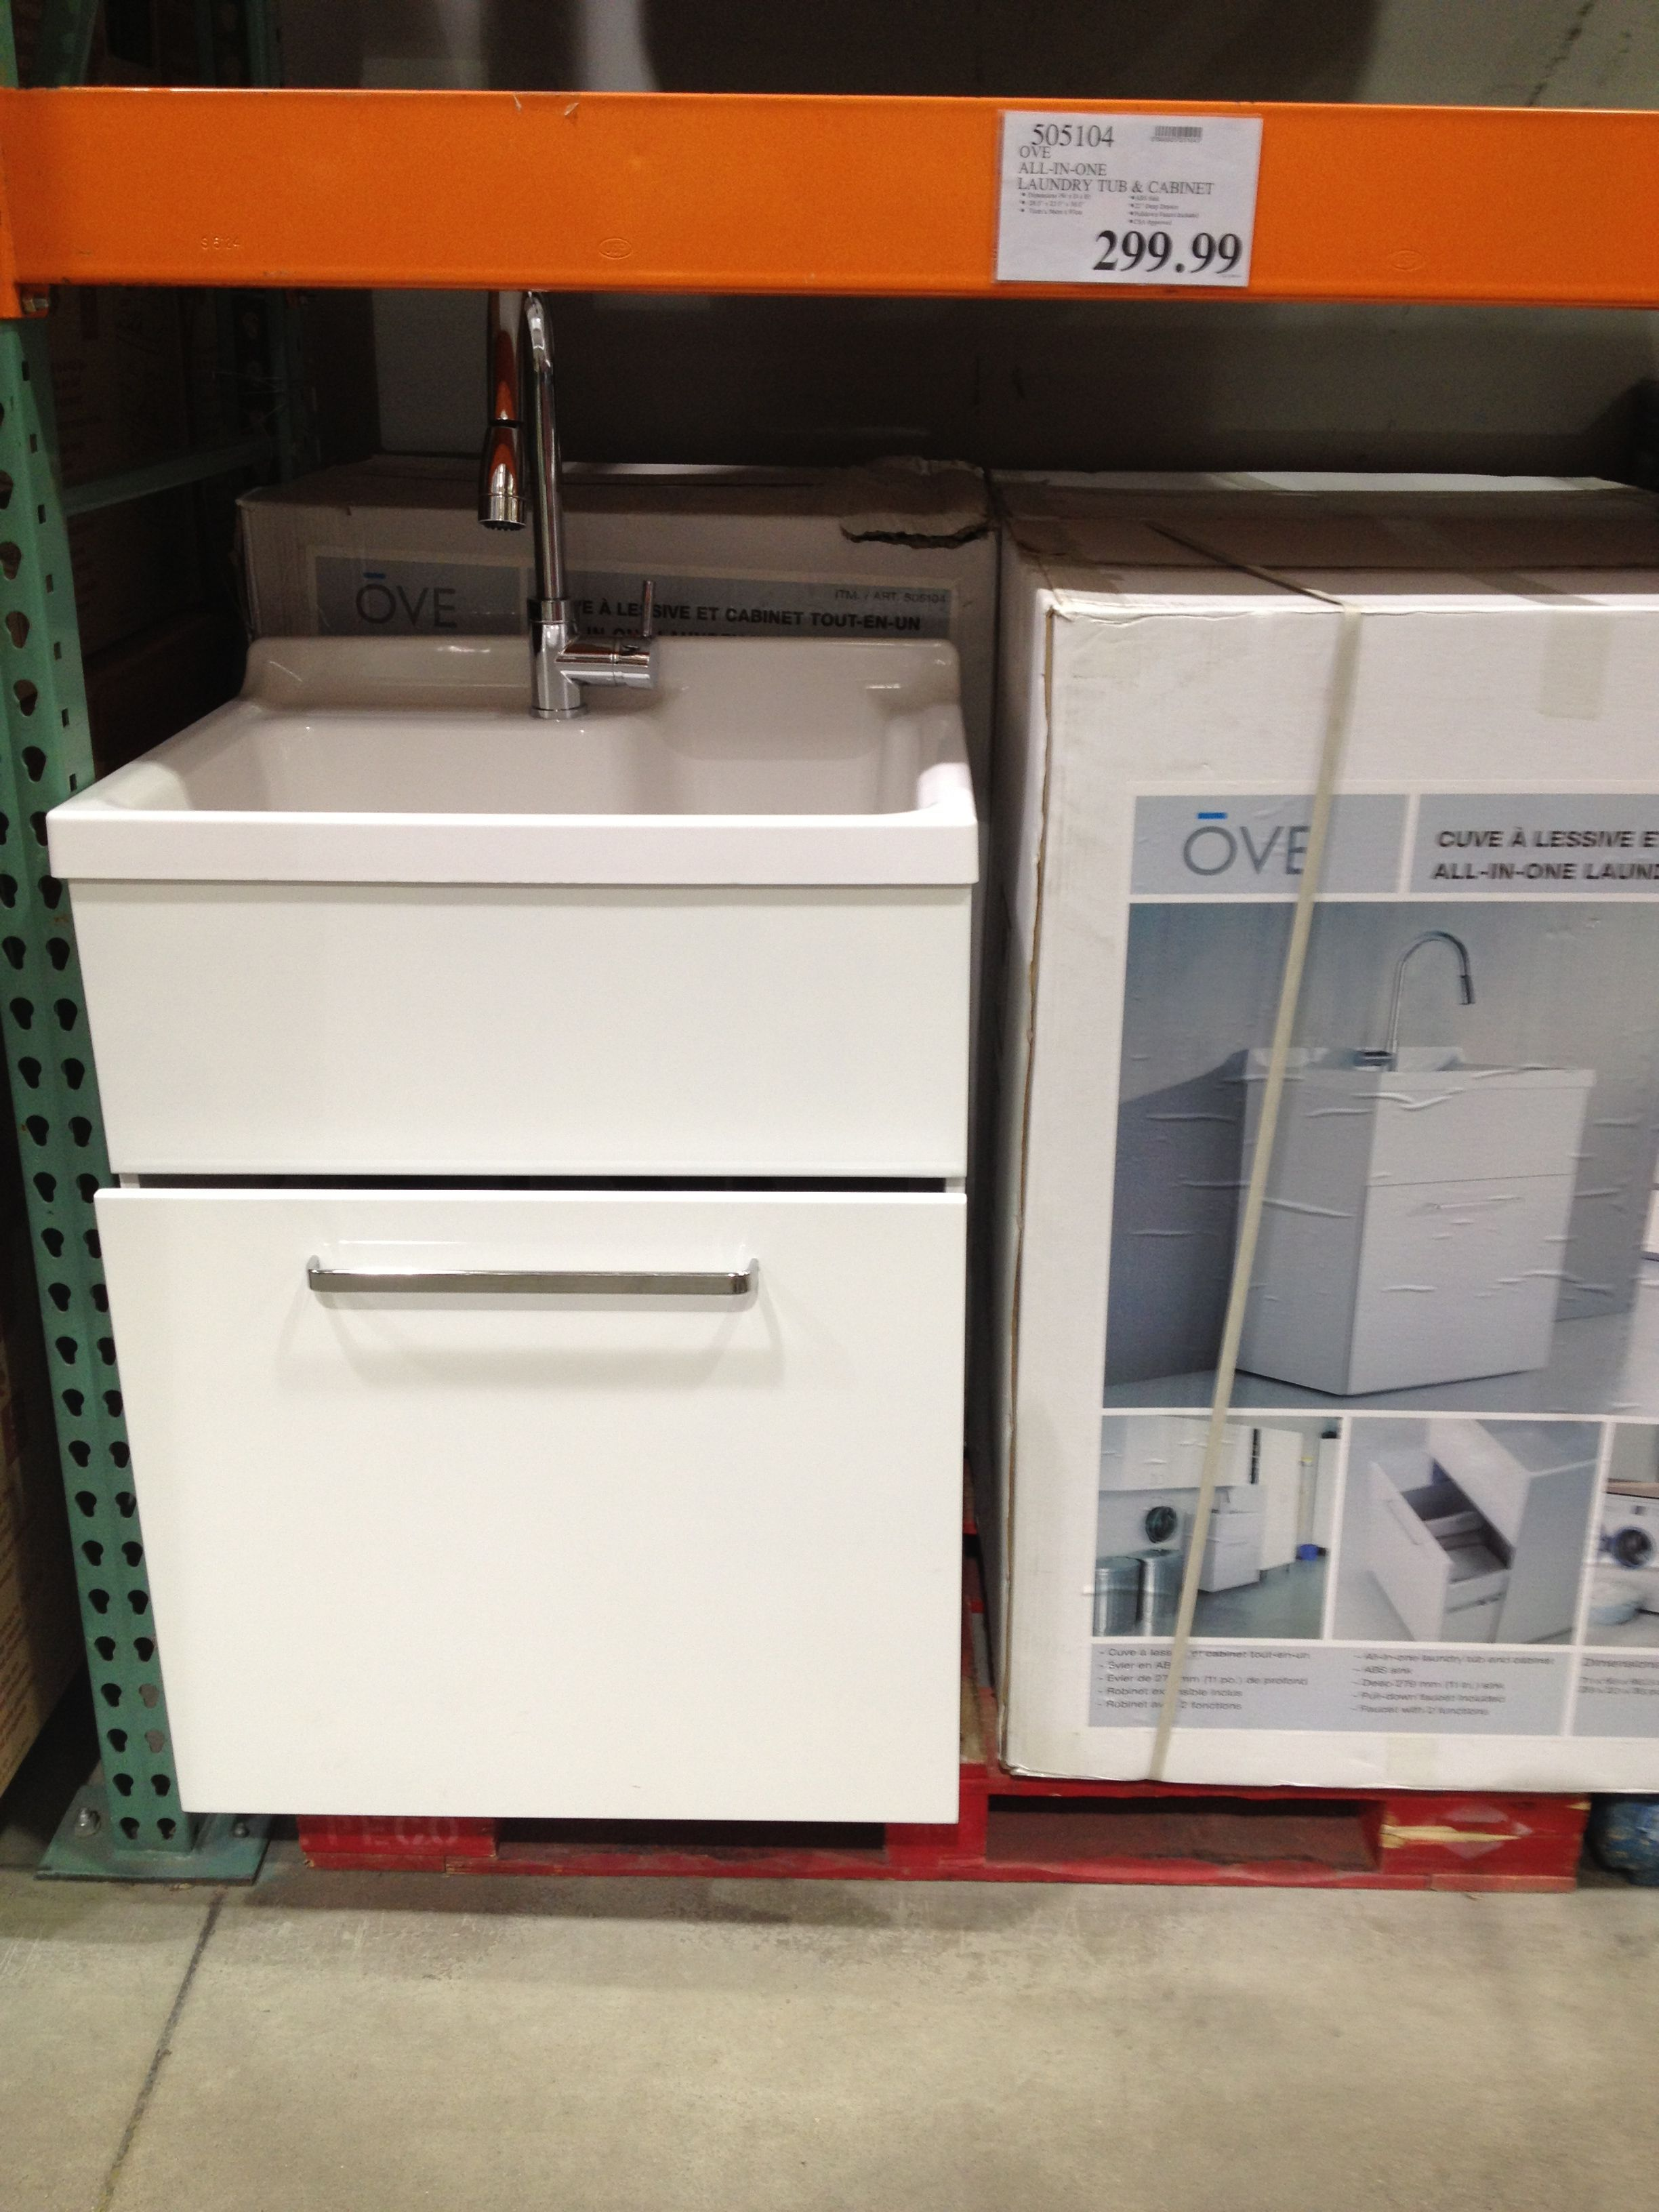 Merveilleux COSTCO $299 Utility Sink For Garage Bathroom. Not First Choice, But Could  Work!